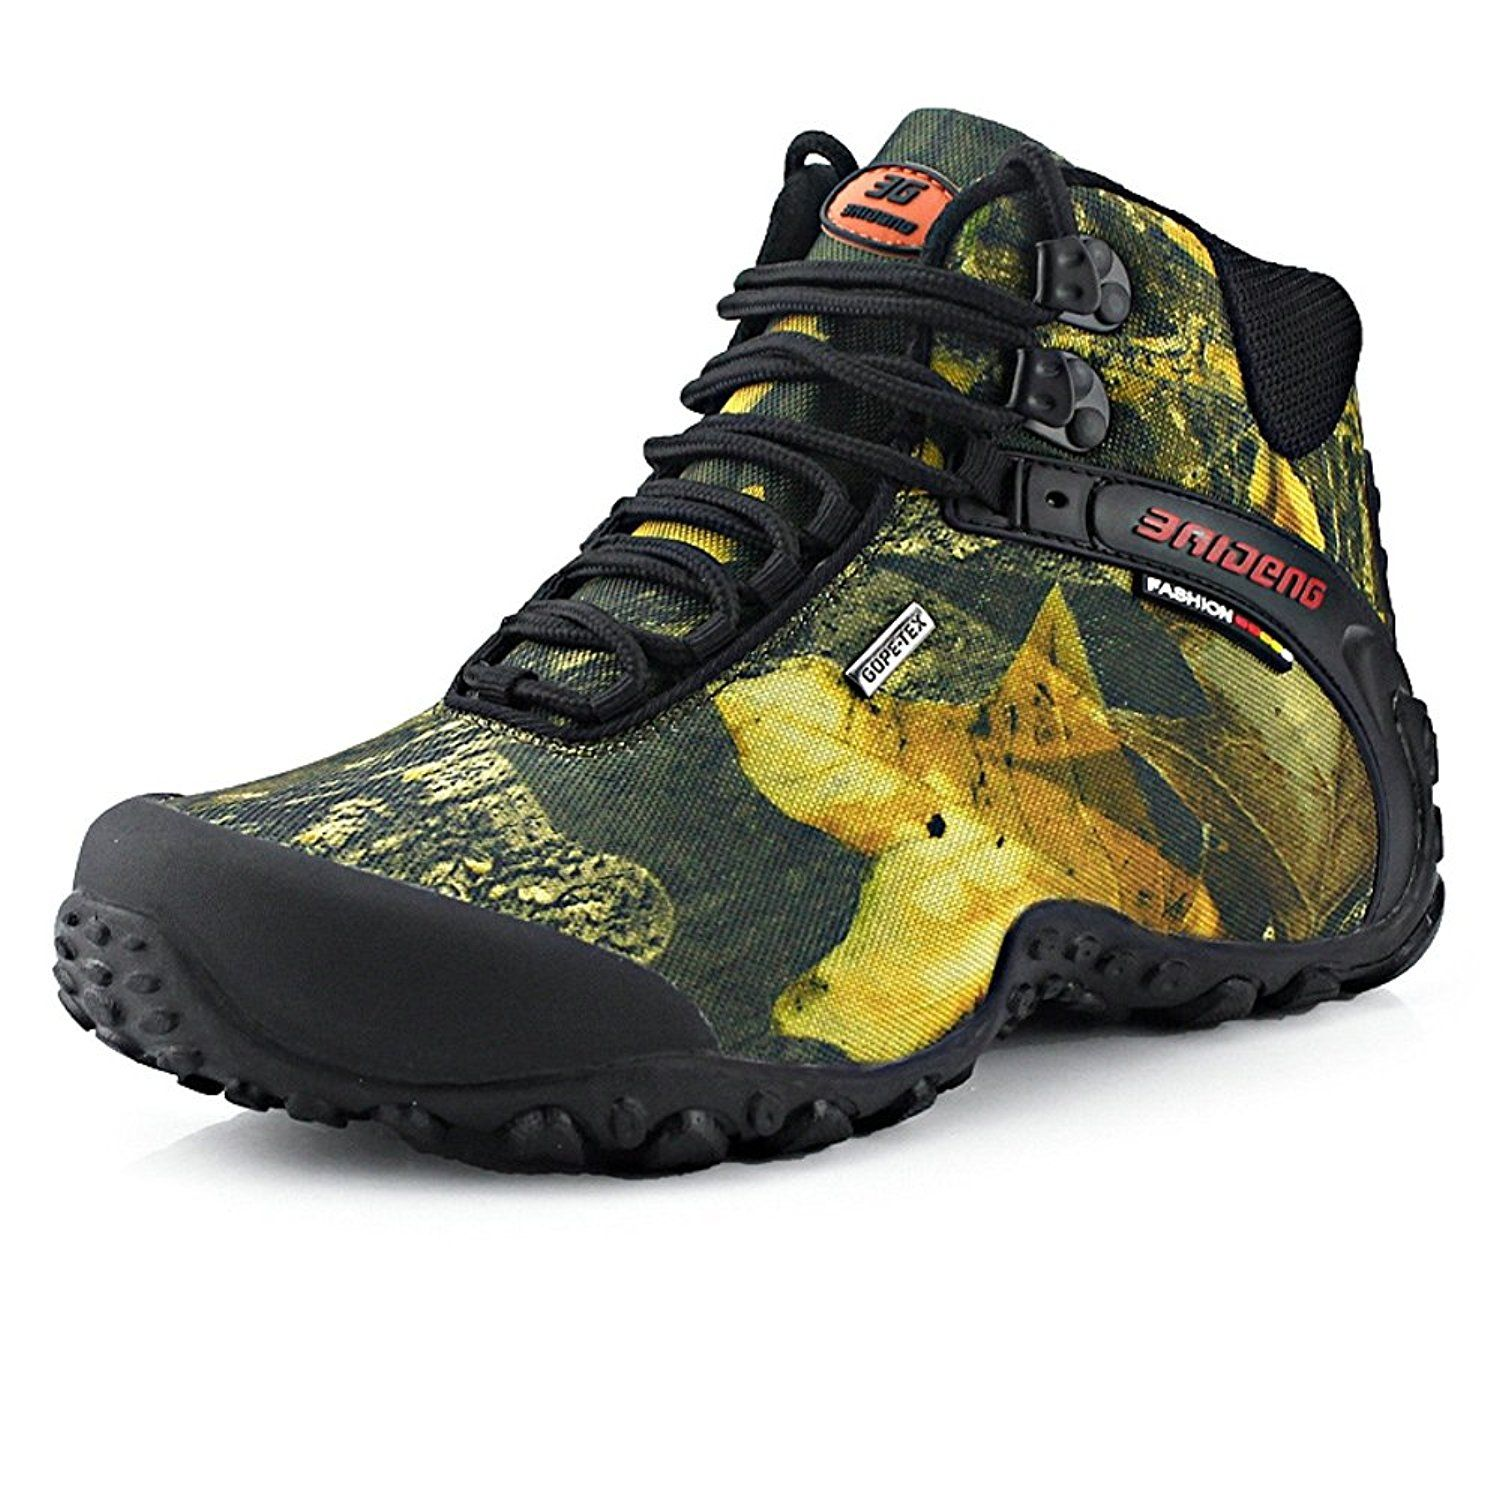 efb5003f688d1 waterproof canvas hiking boots Anti-skid thable fishing climbing ...